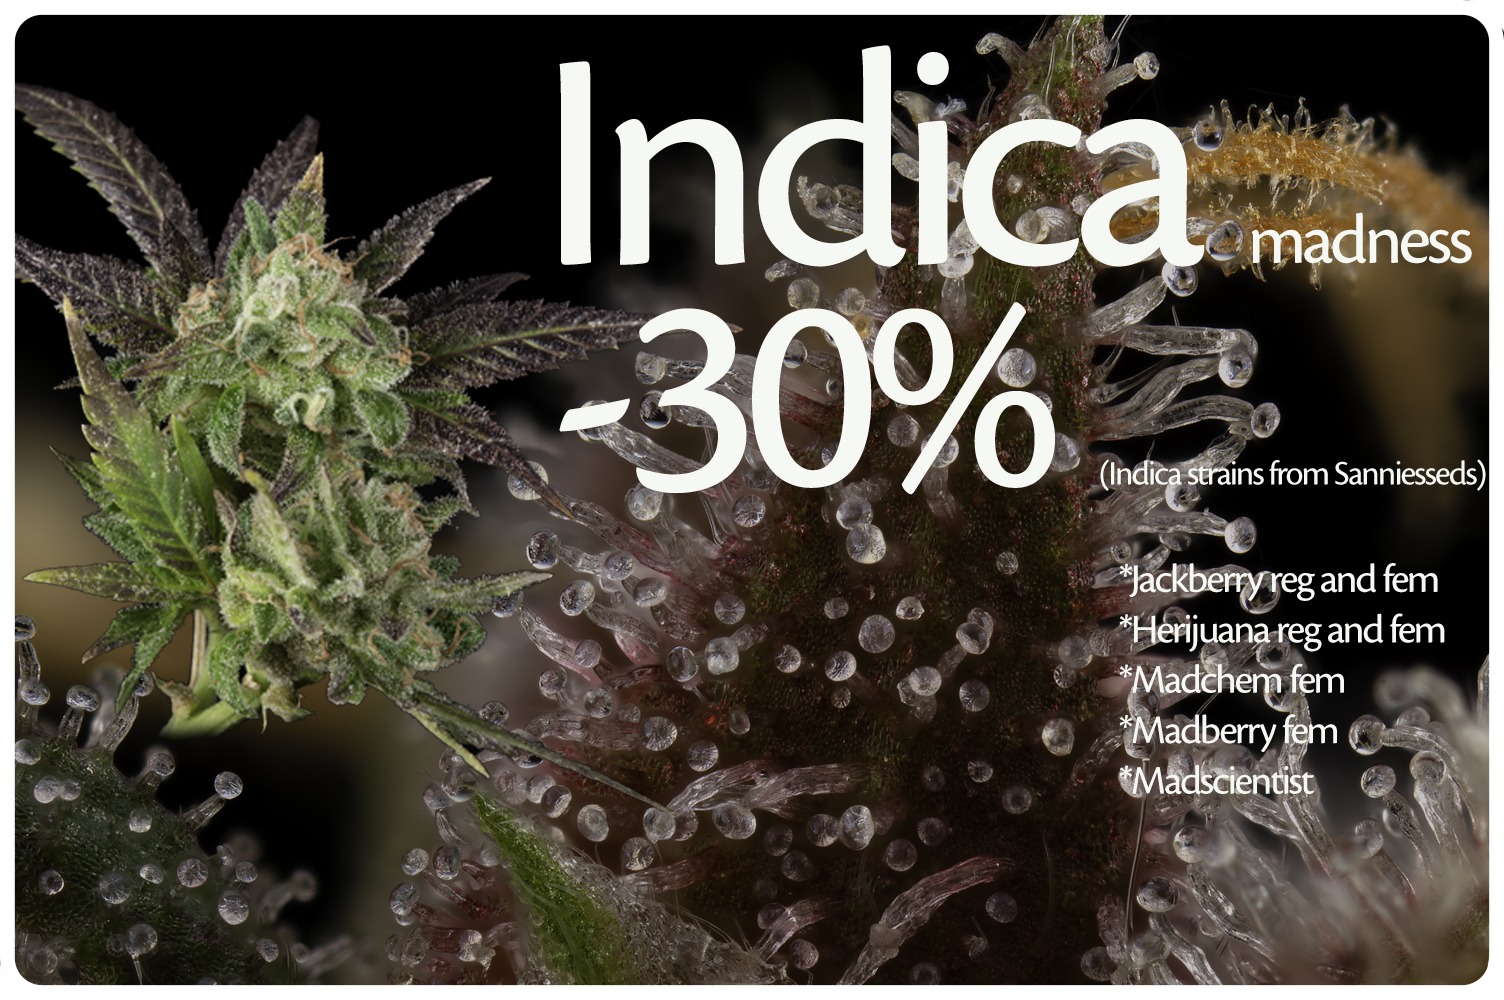 Sanniesseeds indica strains with 30% discount